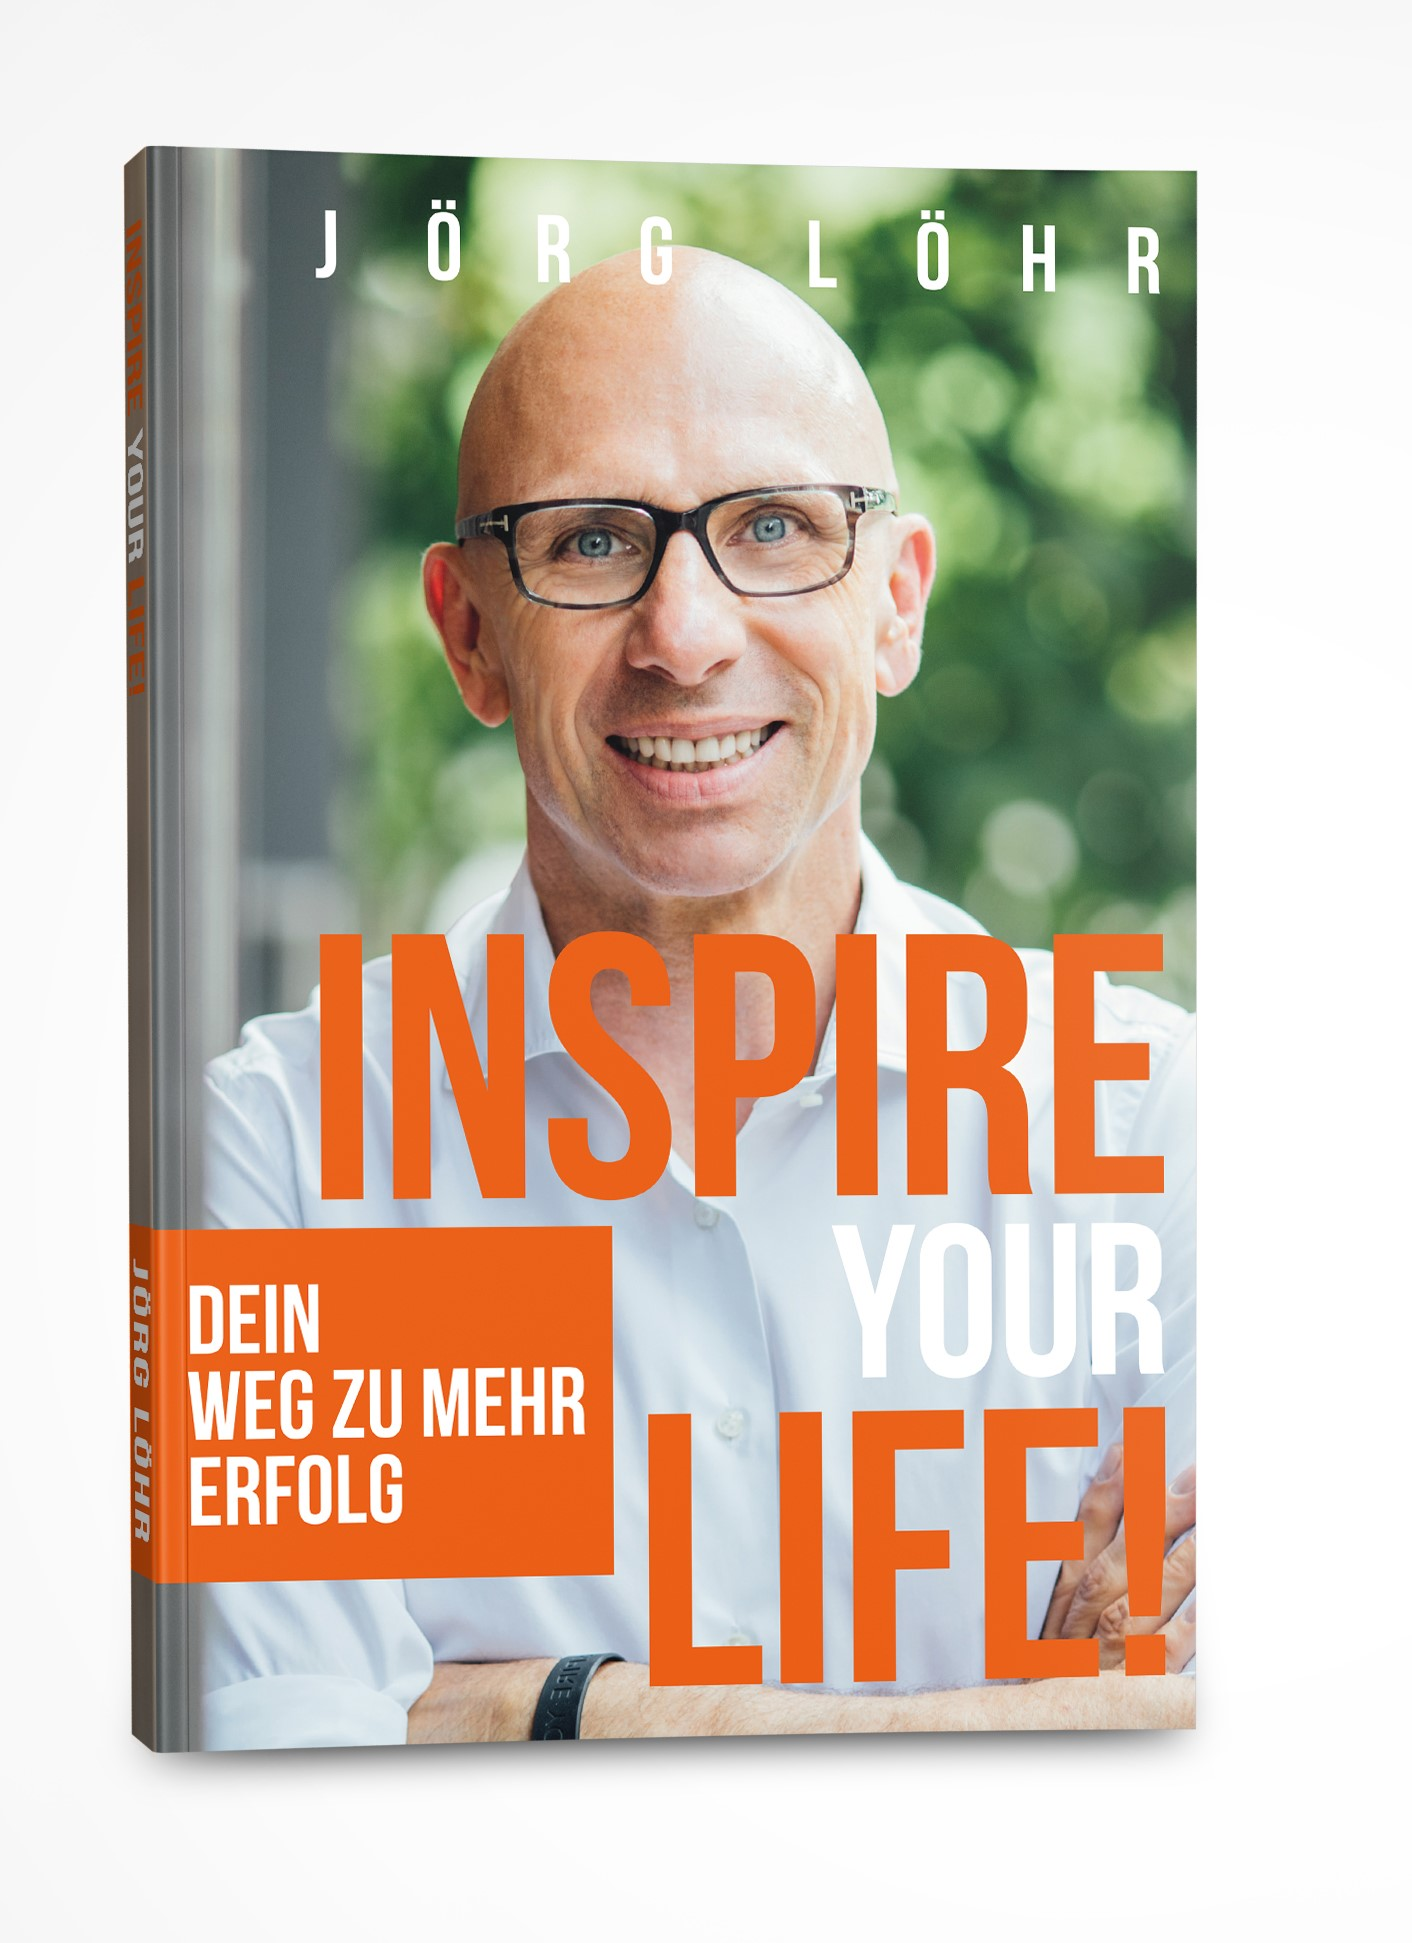 Expert Marketplace -  Jörg Löhr  - INSPIRE YOUR LIFE